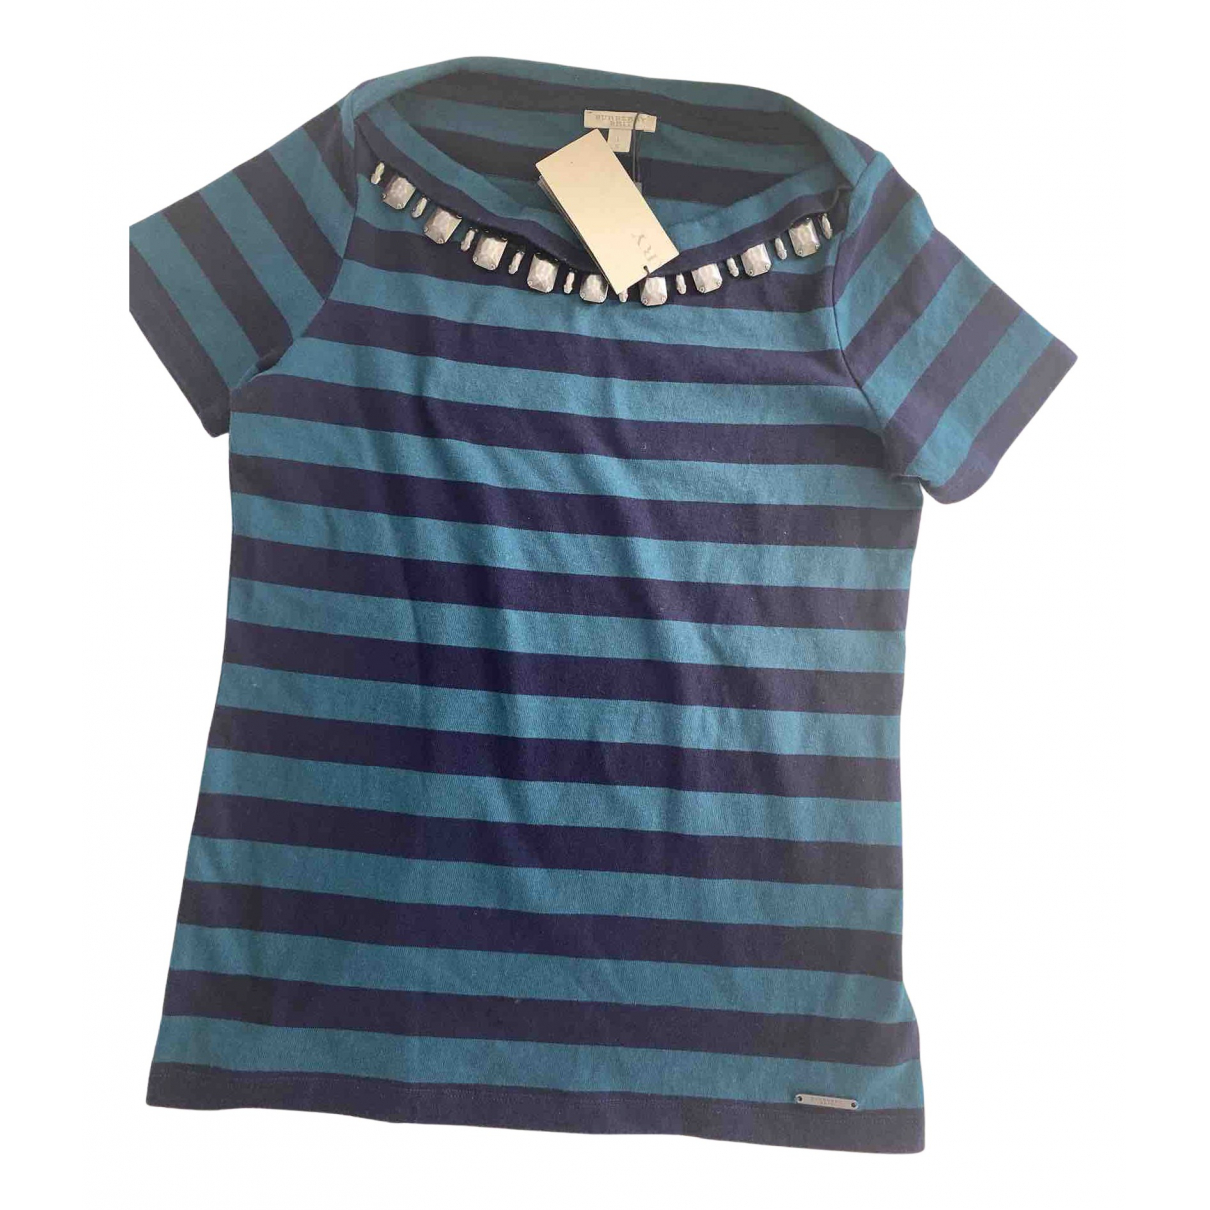 Burberry N Blue Cotton Knitwear for Women 40 FR